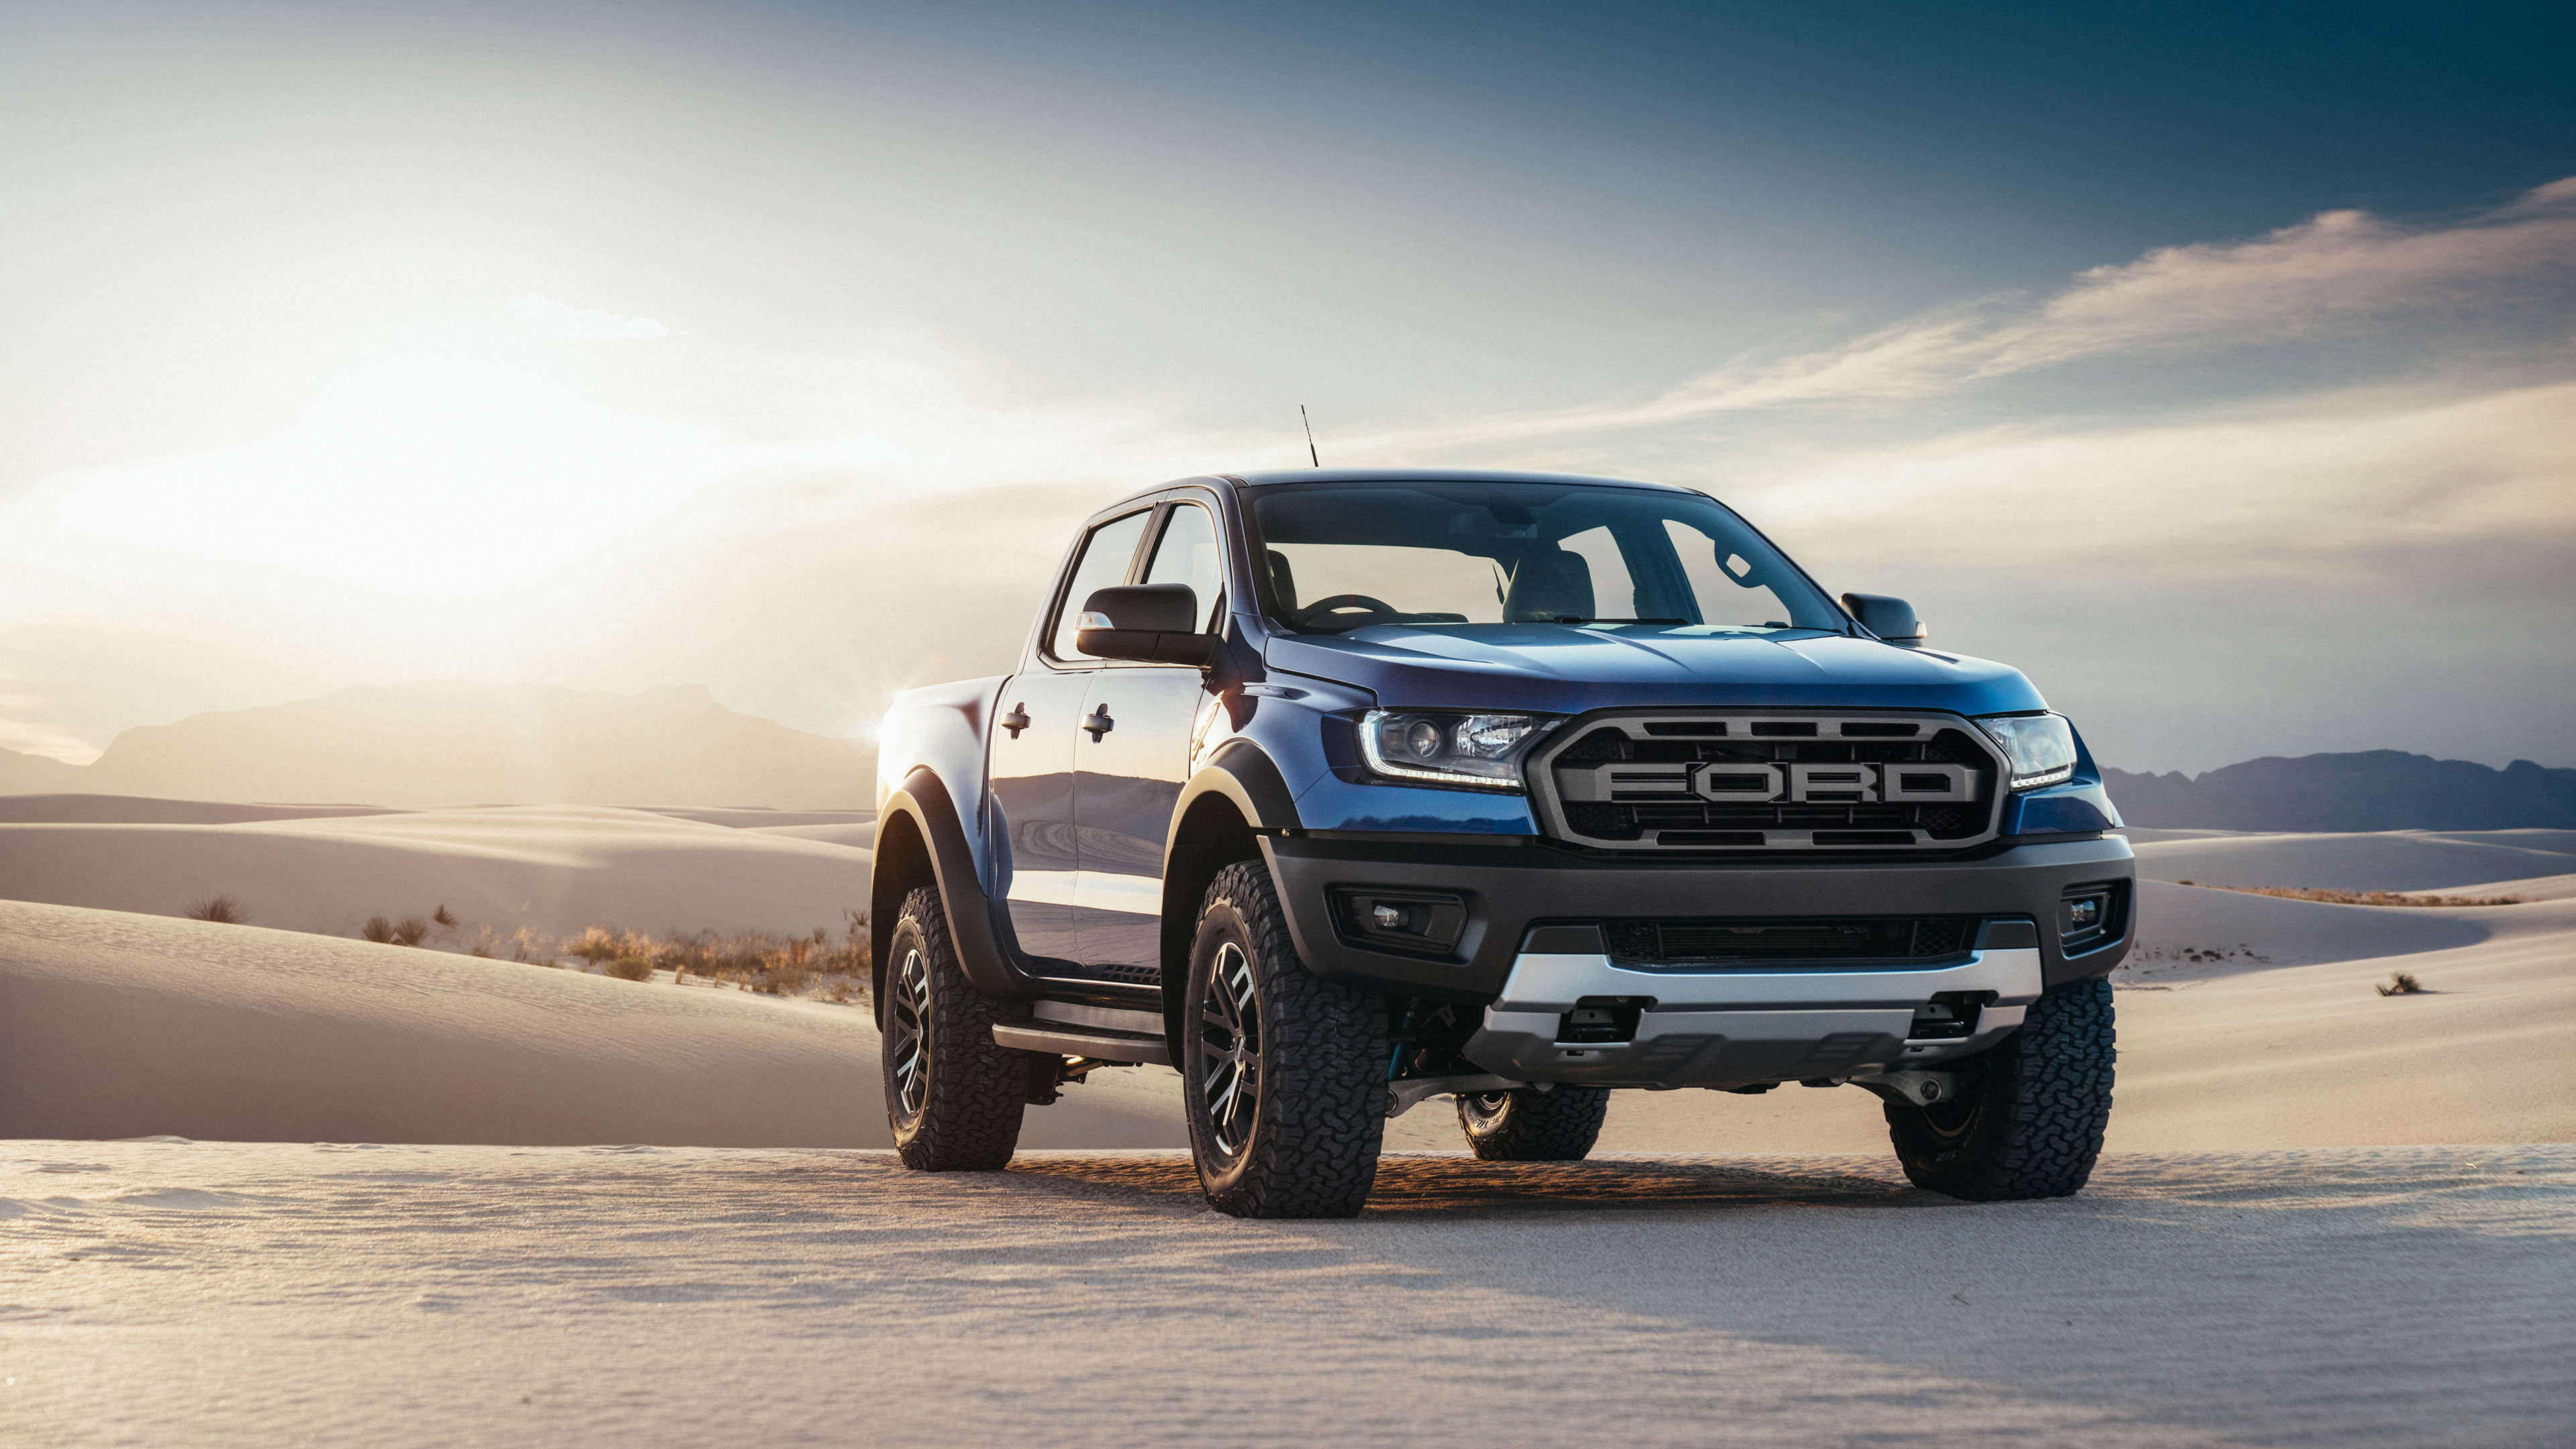 2019 Ford Ranger Raptor 4k Wallpaper Hd Car Wallpapers